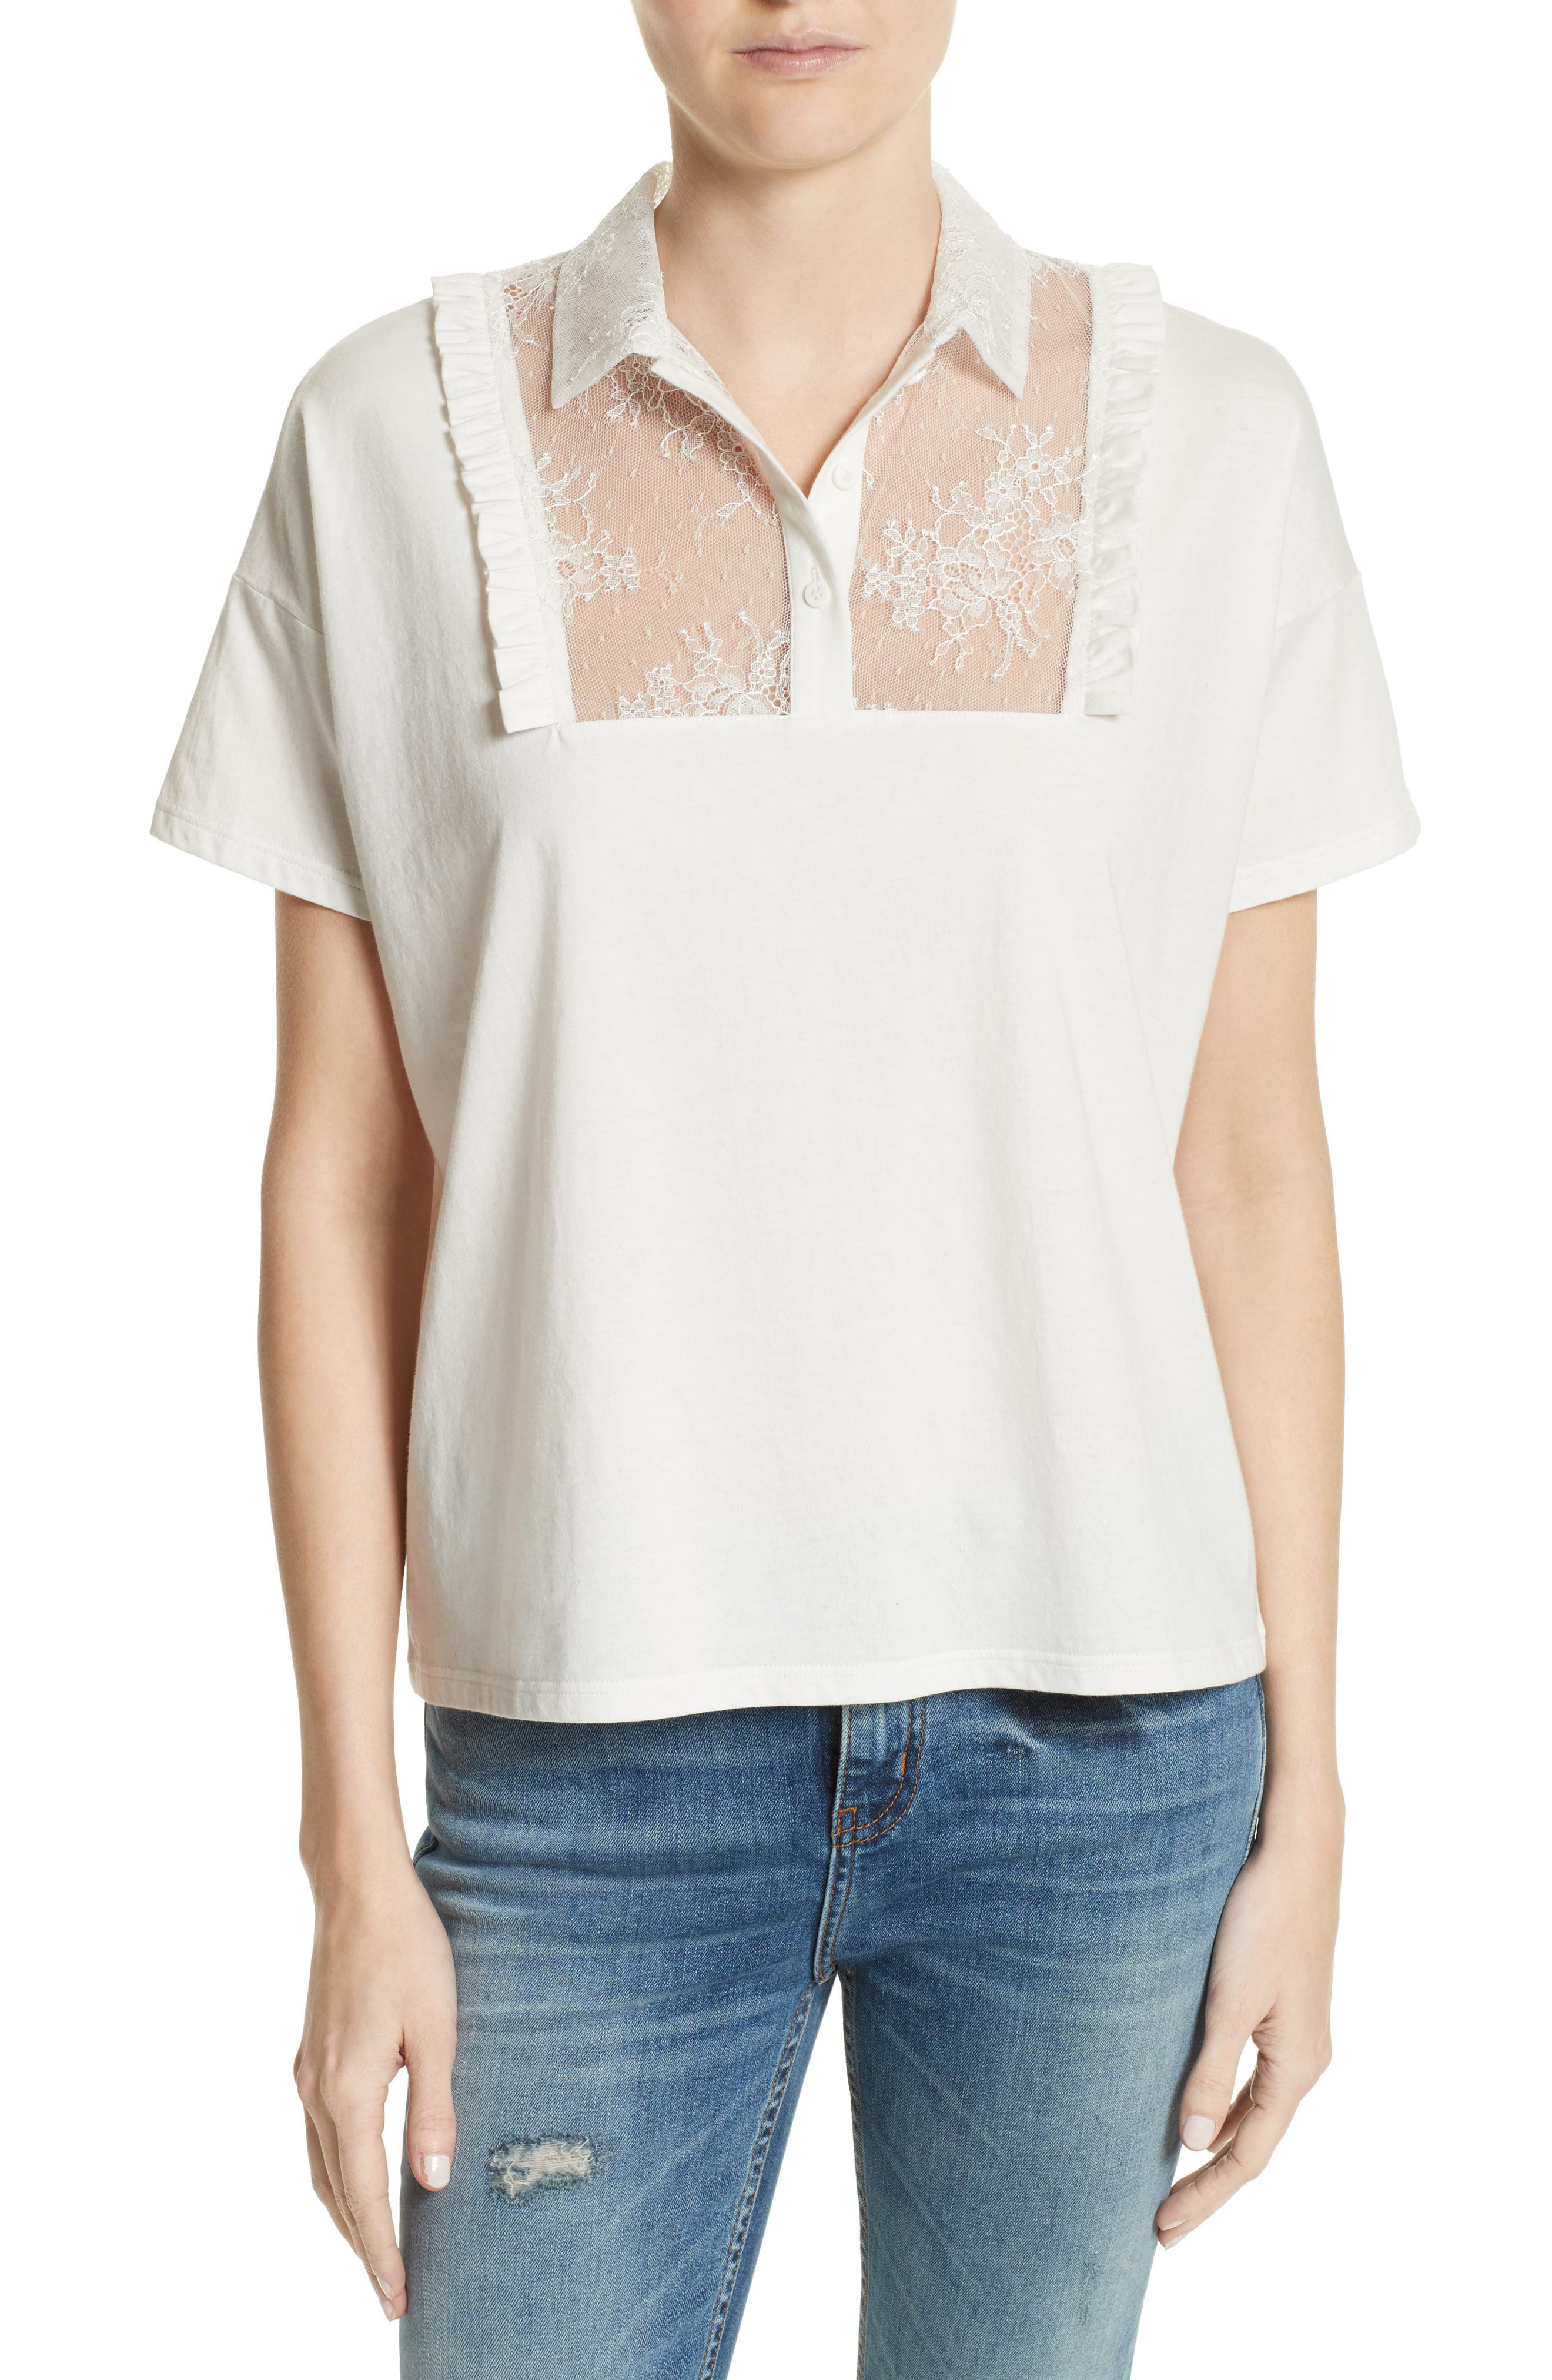 Alternate Image 1 Selected - The Kooples Lace & Ruffle Cotton Top